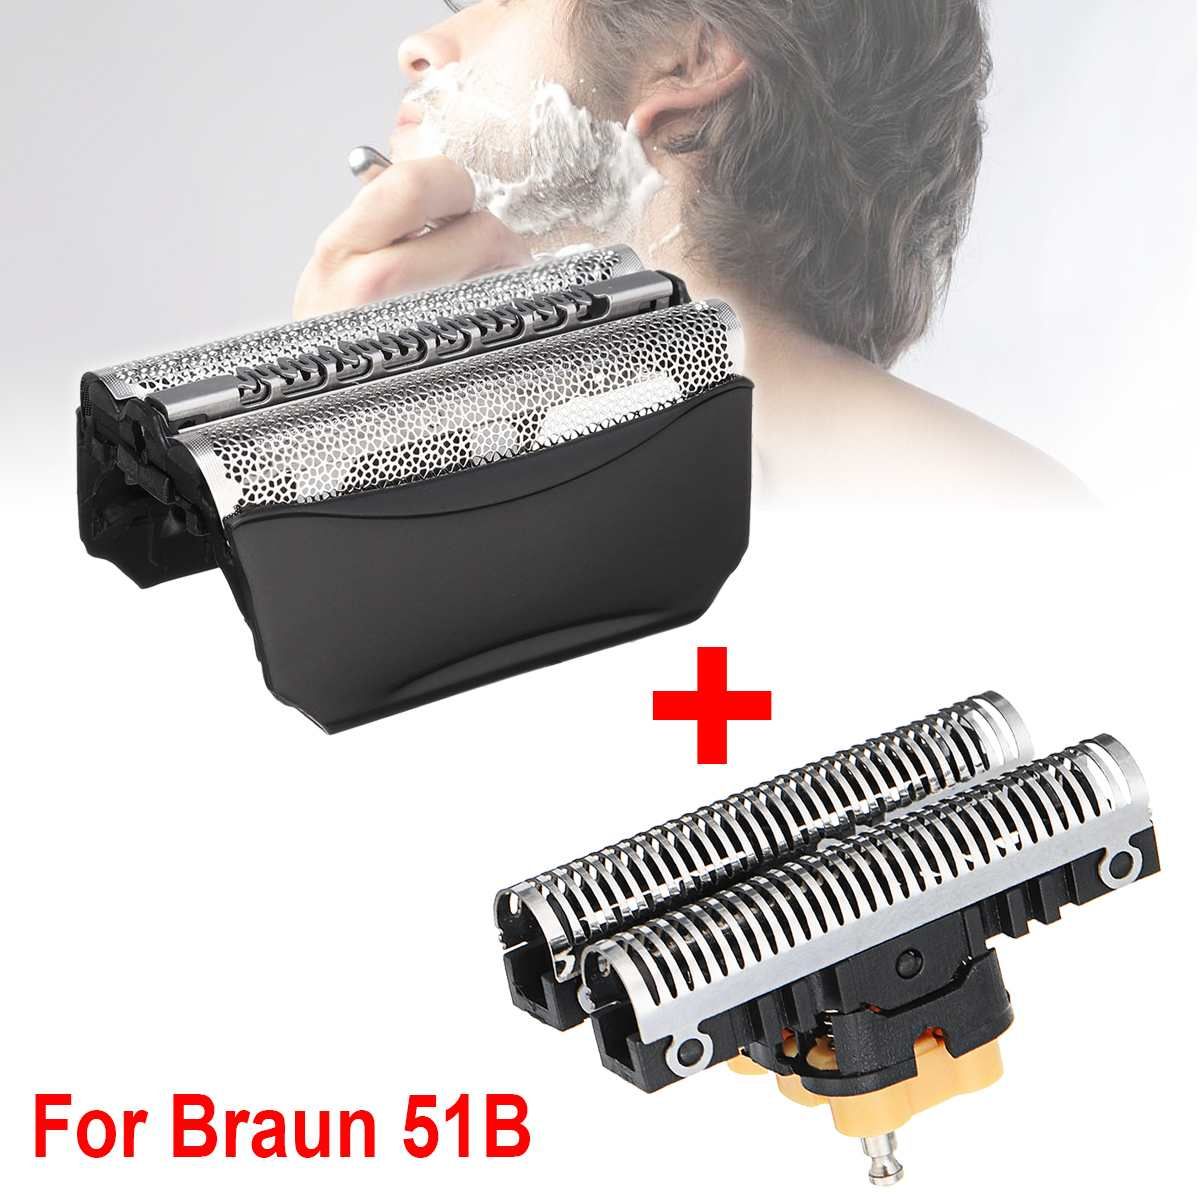 51B Replacement Shaver Foil Cutter Blade For Braun 51B Wfs1 Wfs2 530 550 590 8985 8995 8975 5646 5751 For ContourPro550